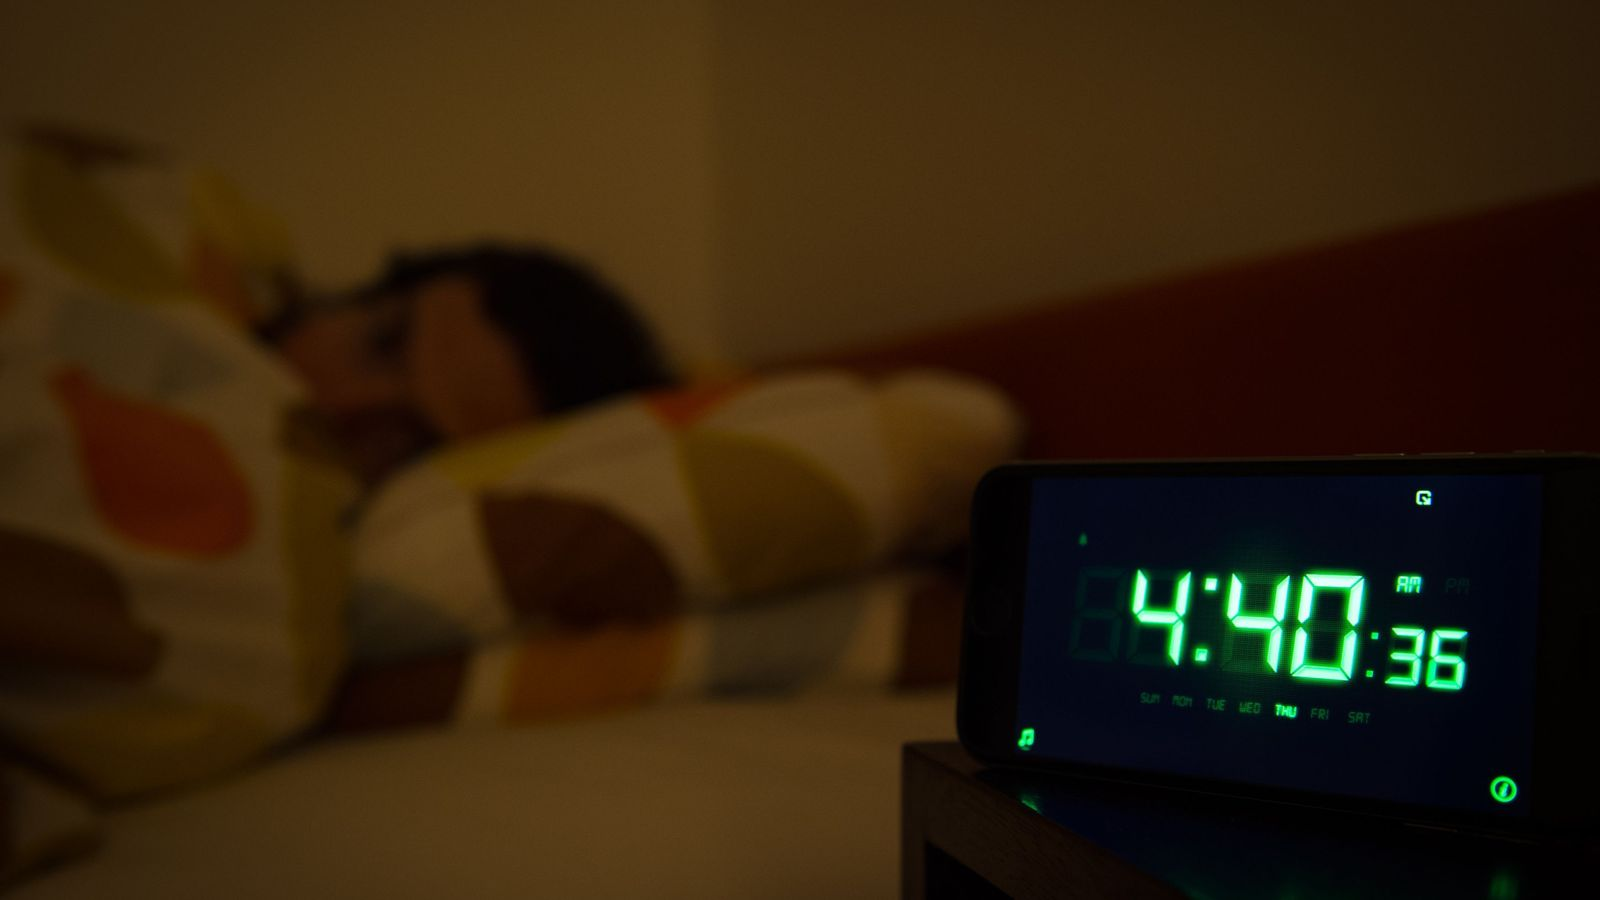 Disturbed sleep can increase risk of death, say research from the University of Adelaide and Maastricht Medical Center |  Science and technology news